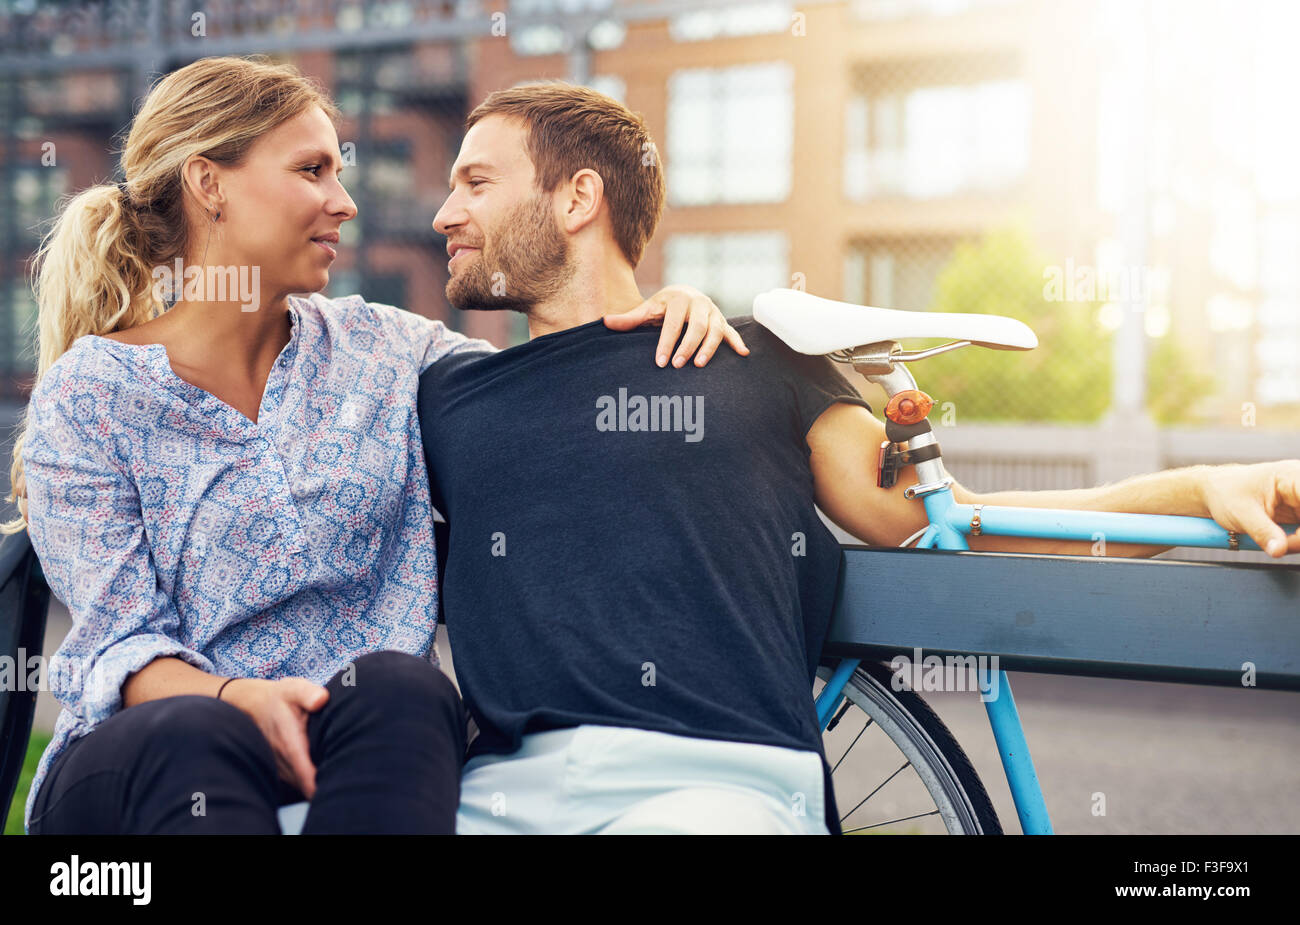 Loving couple sitting on bench in a city environment - Stock Image